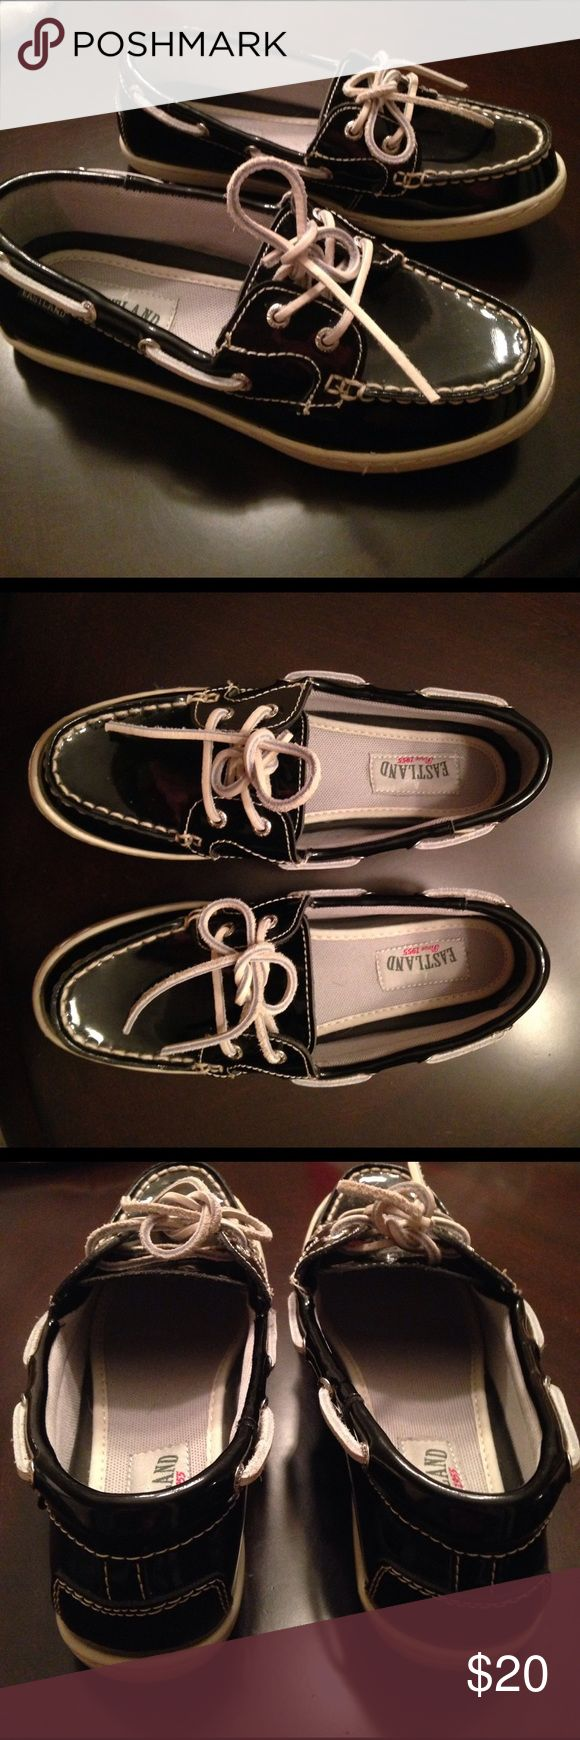 NWOT Eastland Black Leather Shoes. Size 6.5 Eastland Rosy Black leather shoes. New, but without tags. Size 6.5. Leather upper, balance man made materials. Eastland Shoes Flats & Loafers